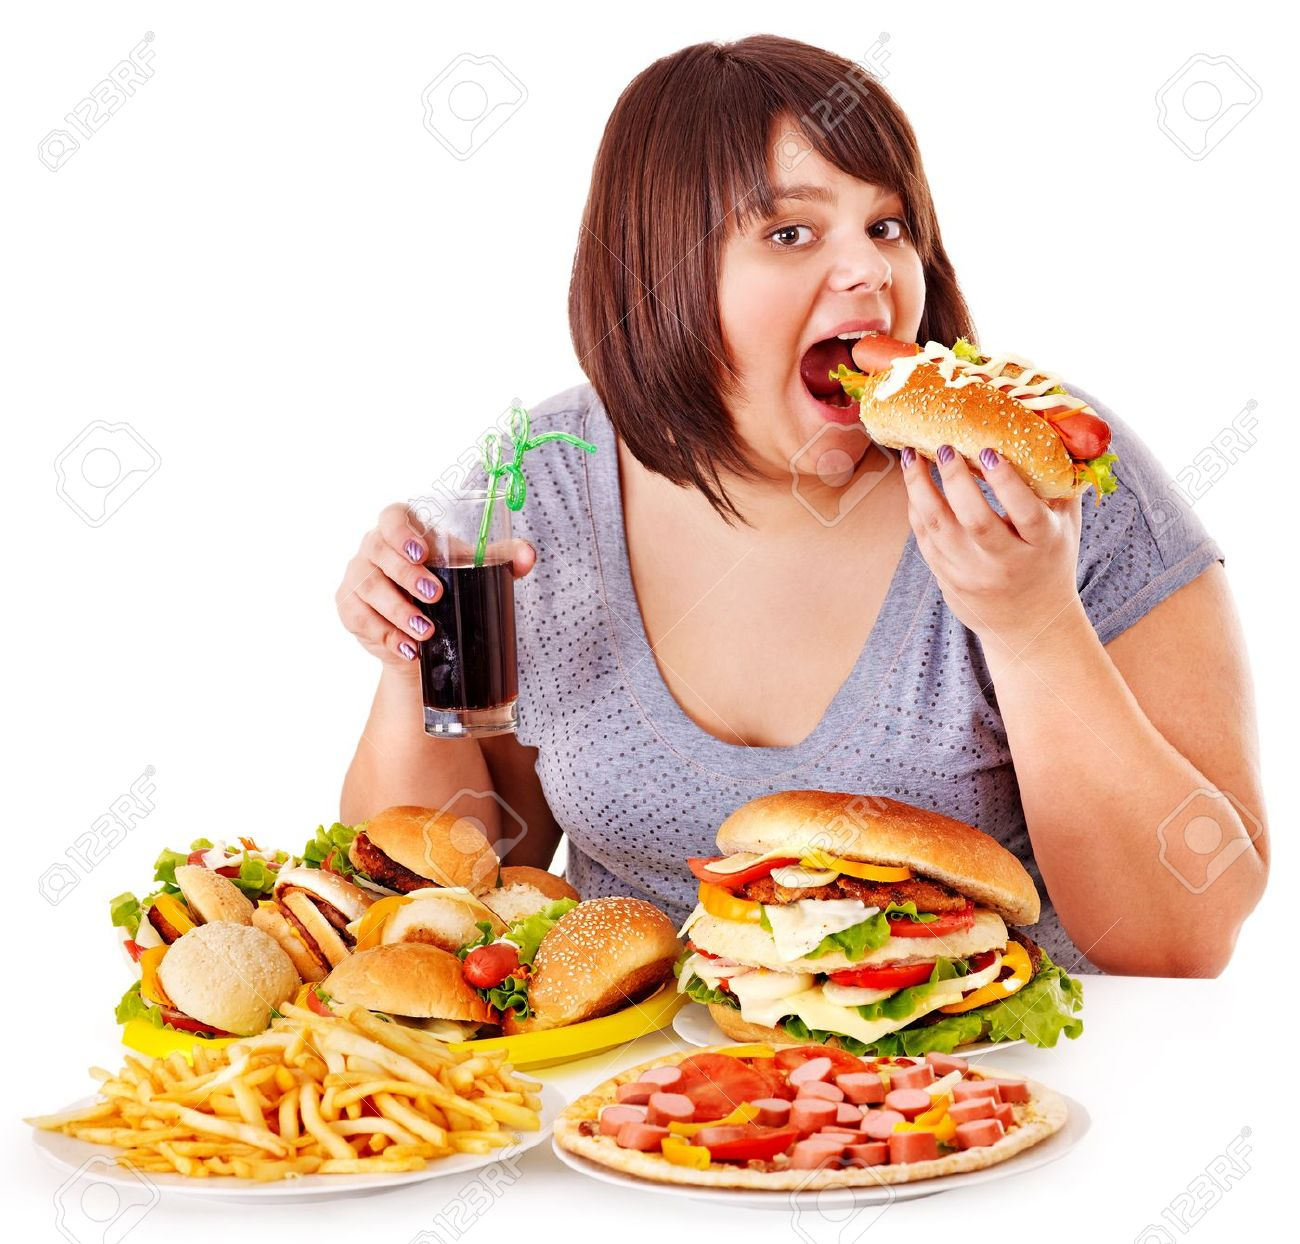 Overweight woman eating fast food. Stock Photo - 15231877